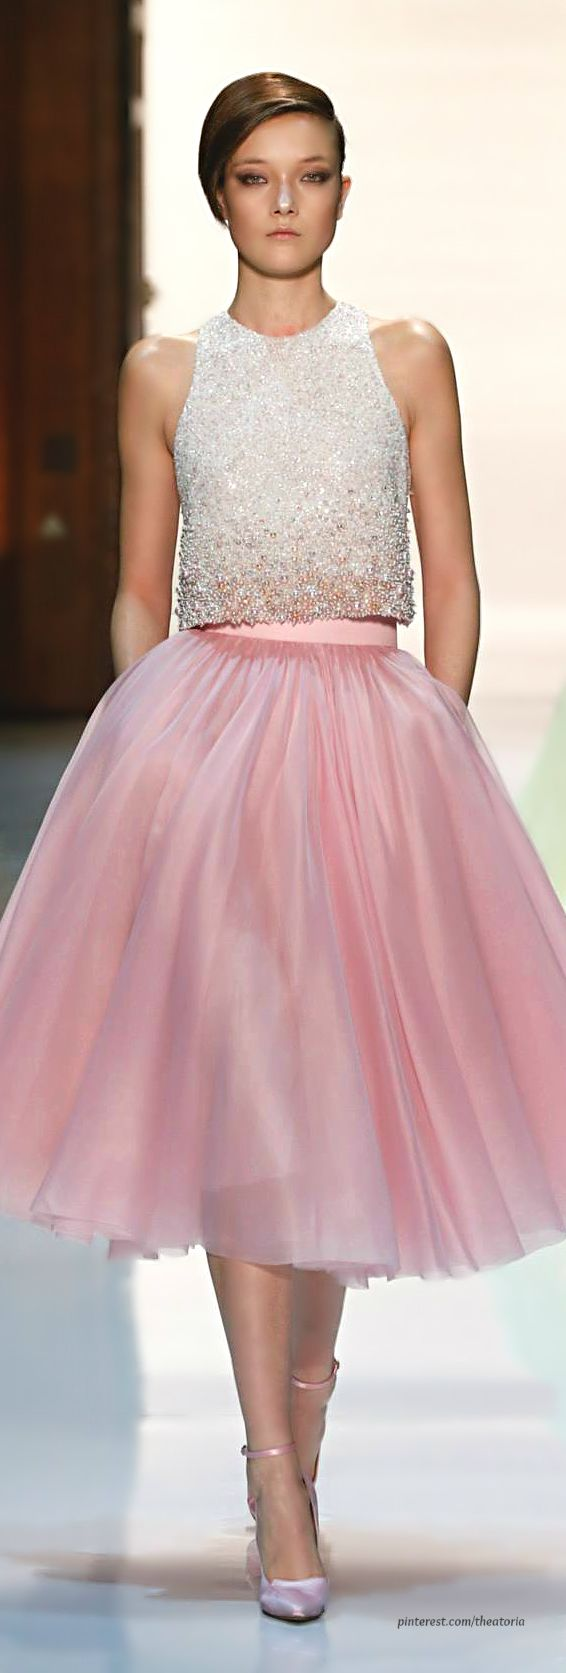 Best 1019 Dresses, Coats, Suits Day to Evening ideas on Pinterest ...